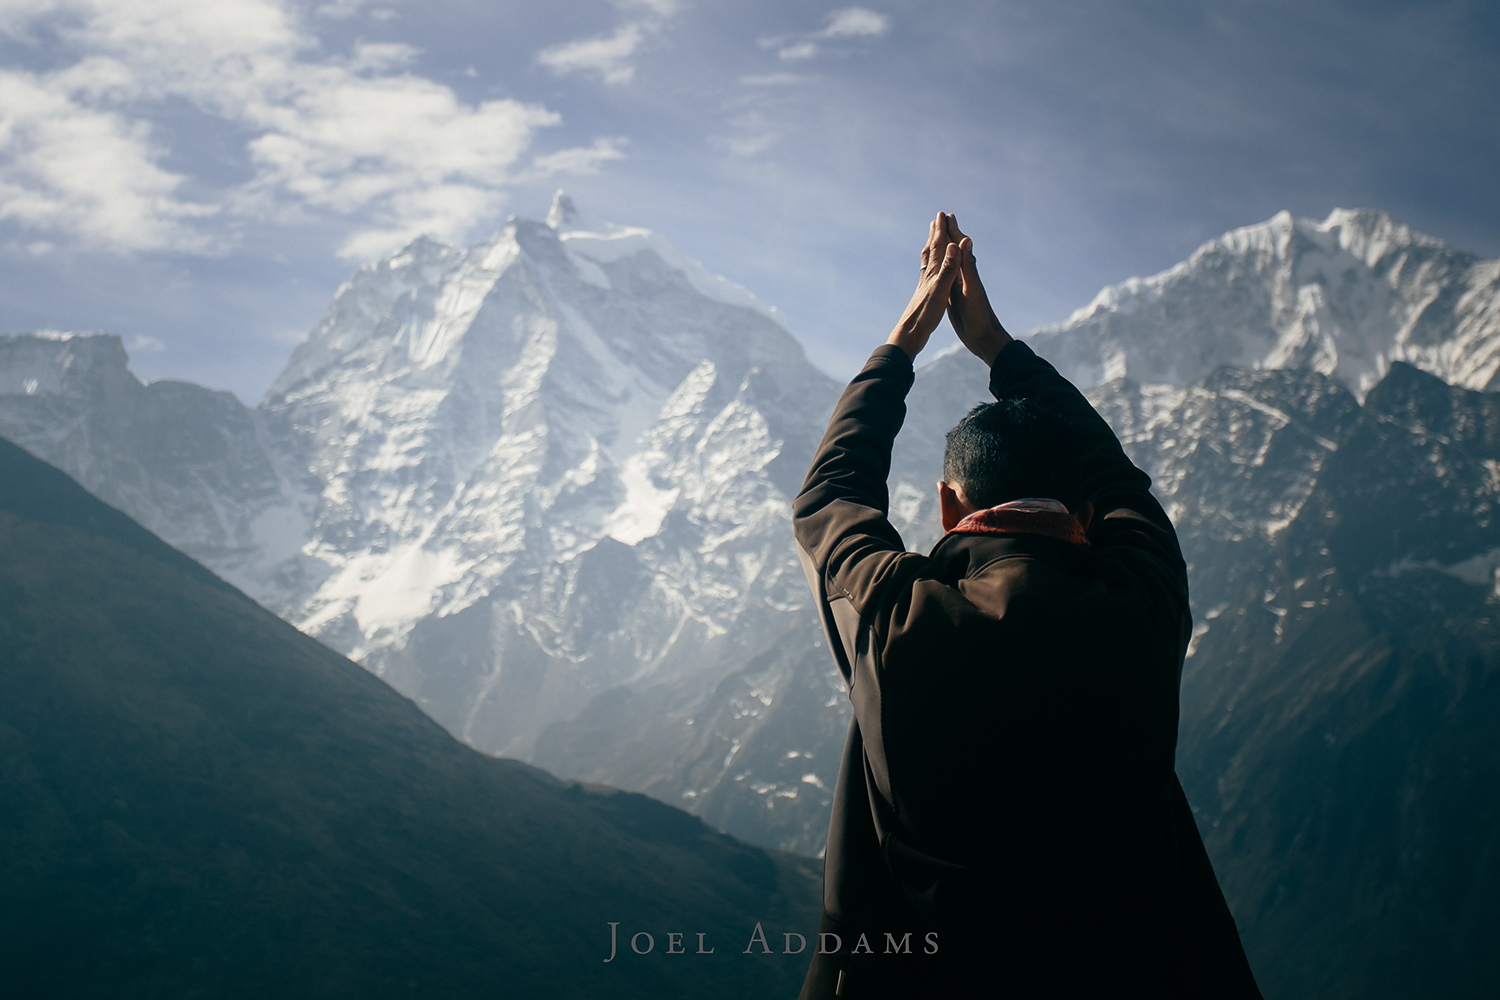 Morning Yoga with our Sherpa guides out of Pangboche. Photo by Joel Addams